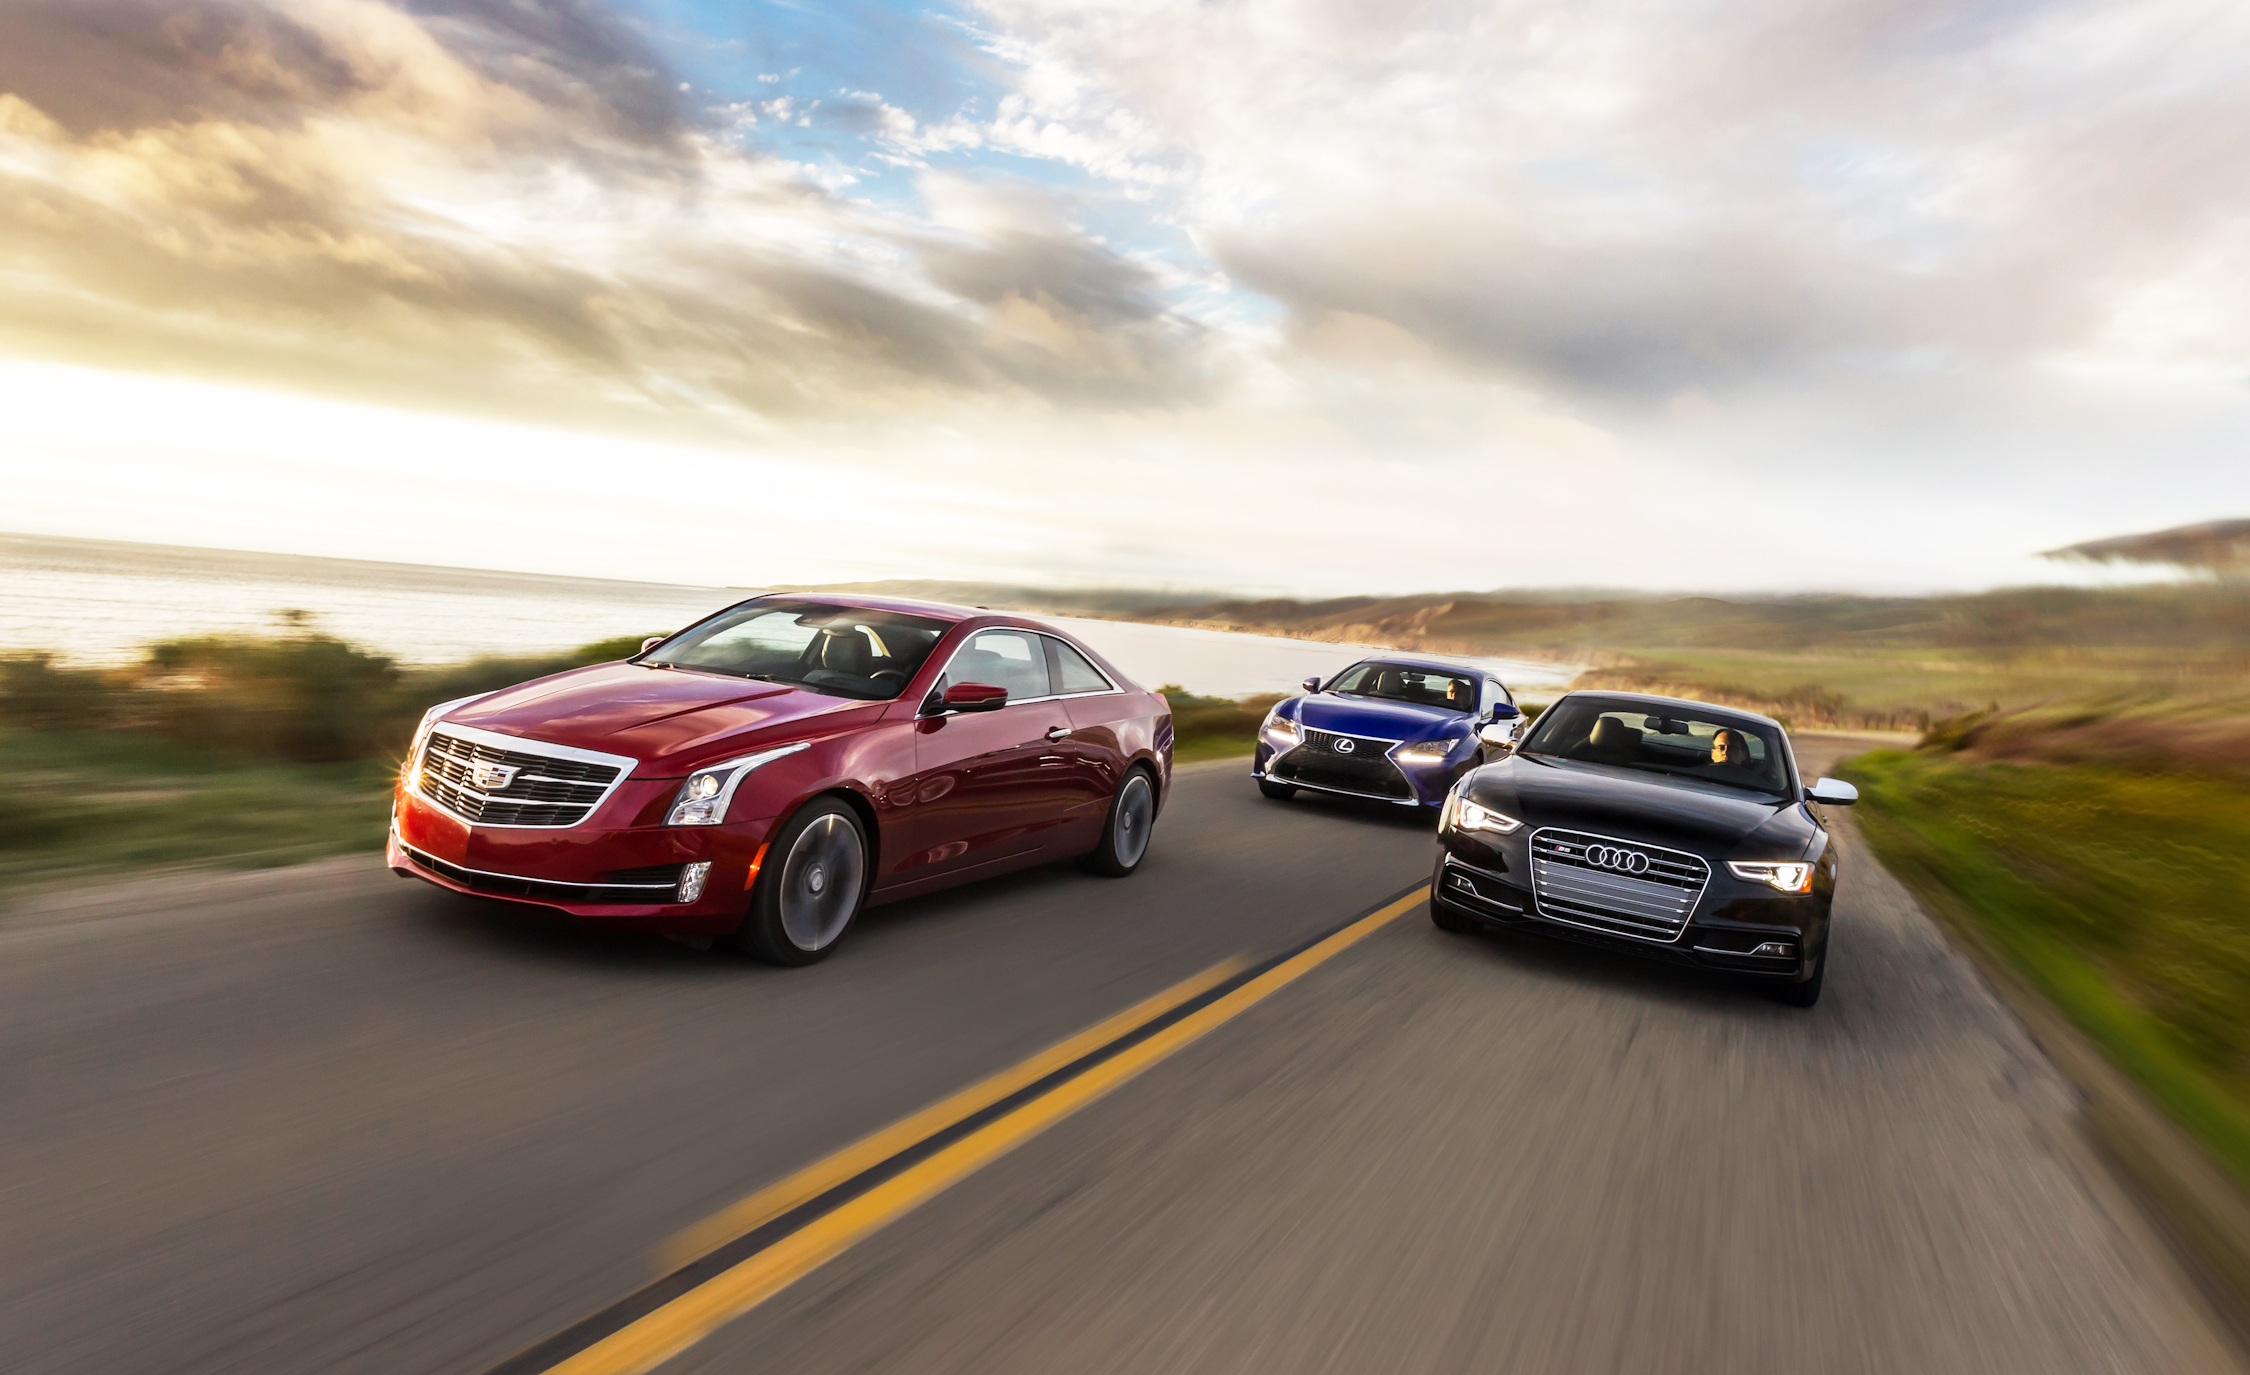 2015 Cadillac ATS Coupe (View 20 of 21)